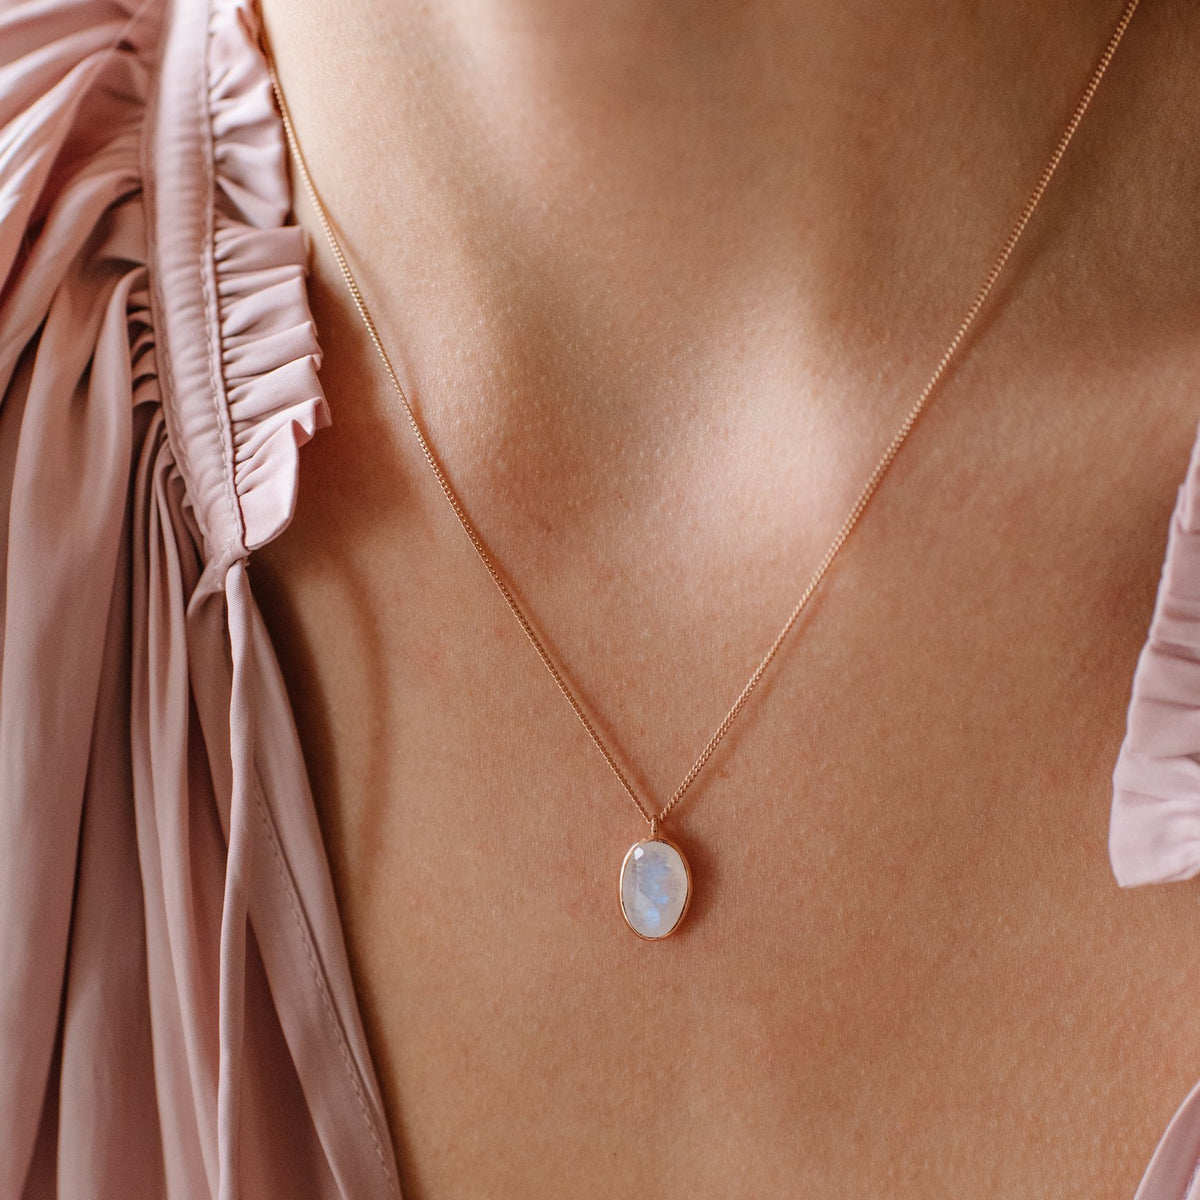 PROTECT PENDANT NECKLACE - RAINBOW MOONSTONE & ROSE GOLD - SO PRETTY CARA COTTER